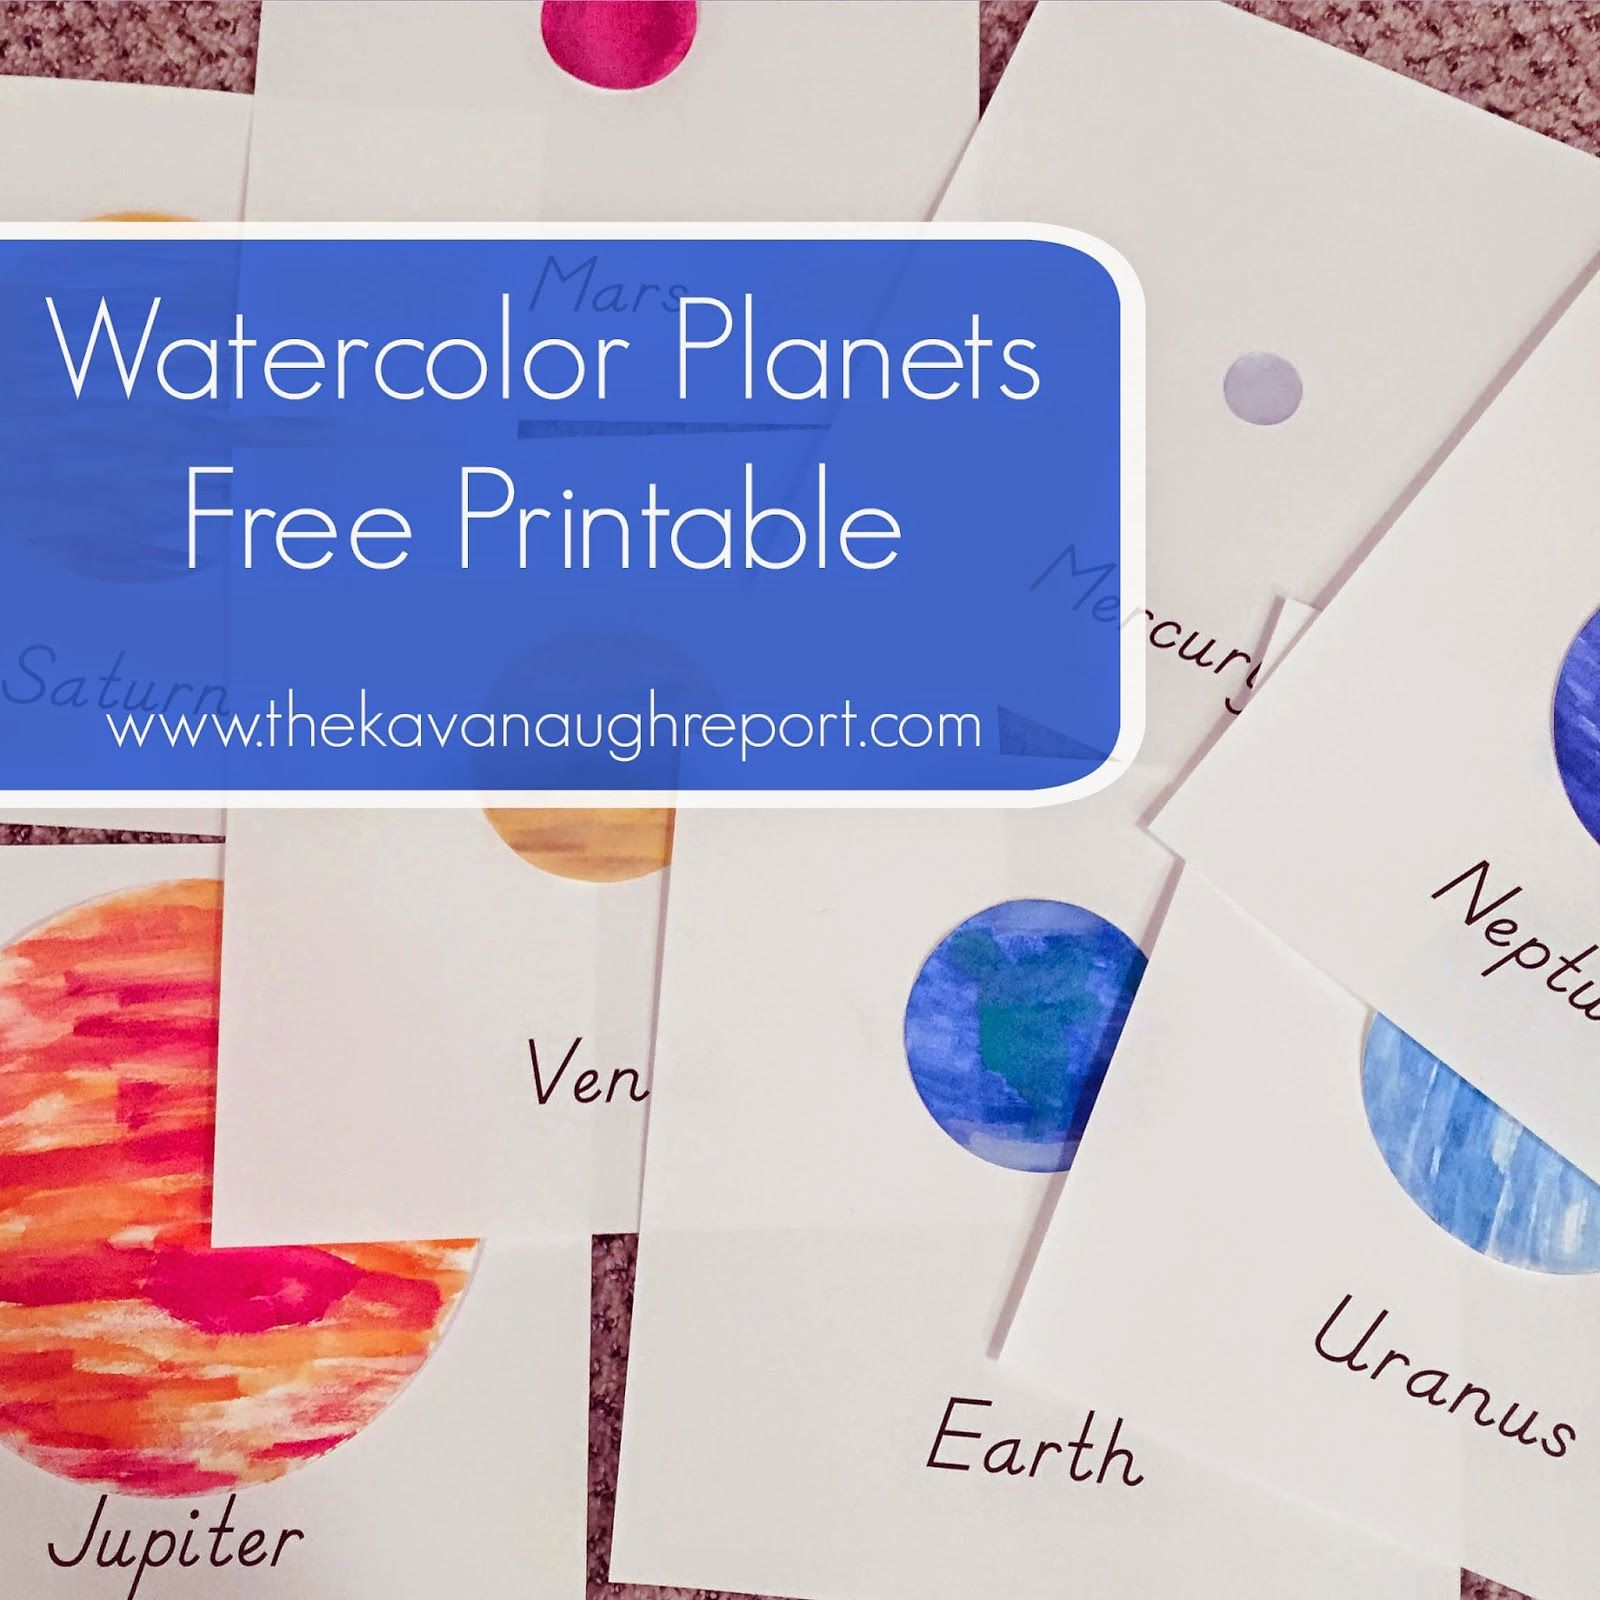 Watercolor Planets Printable